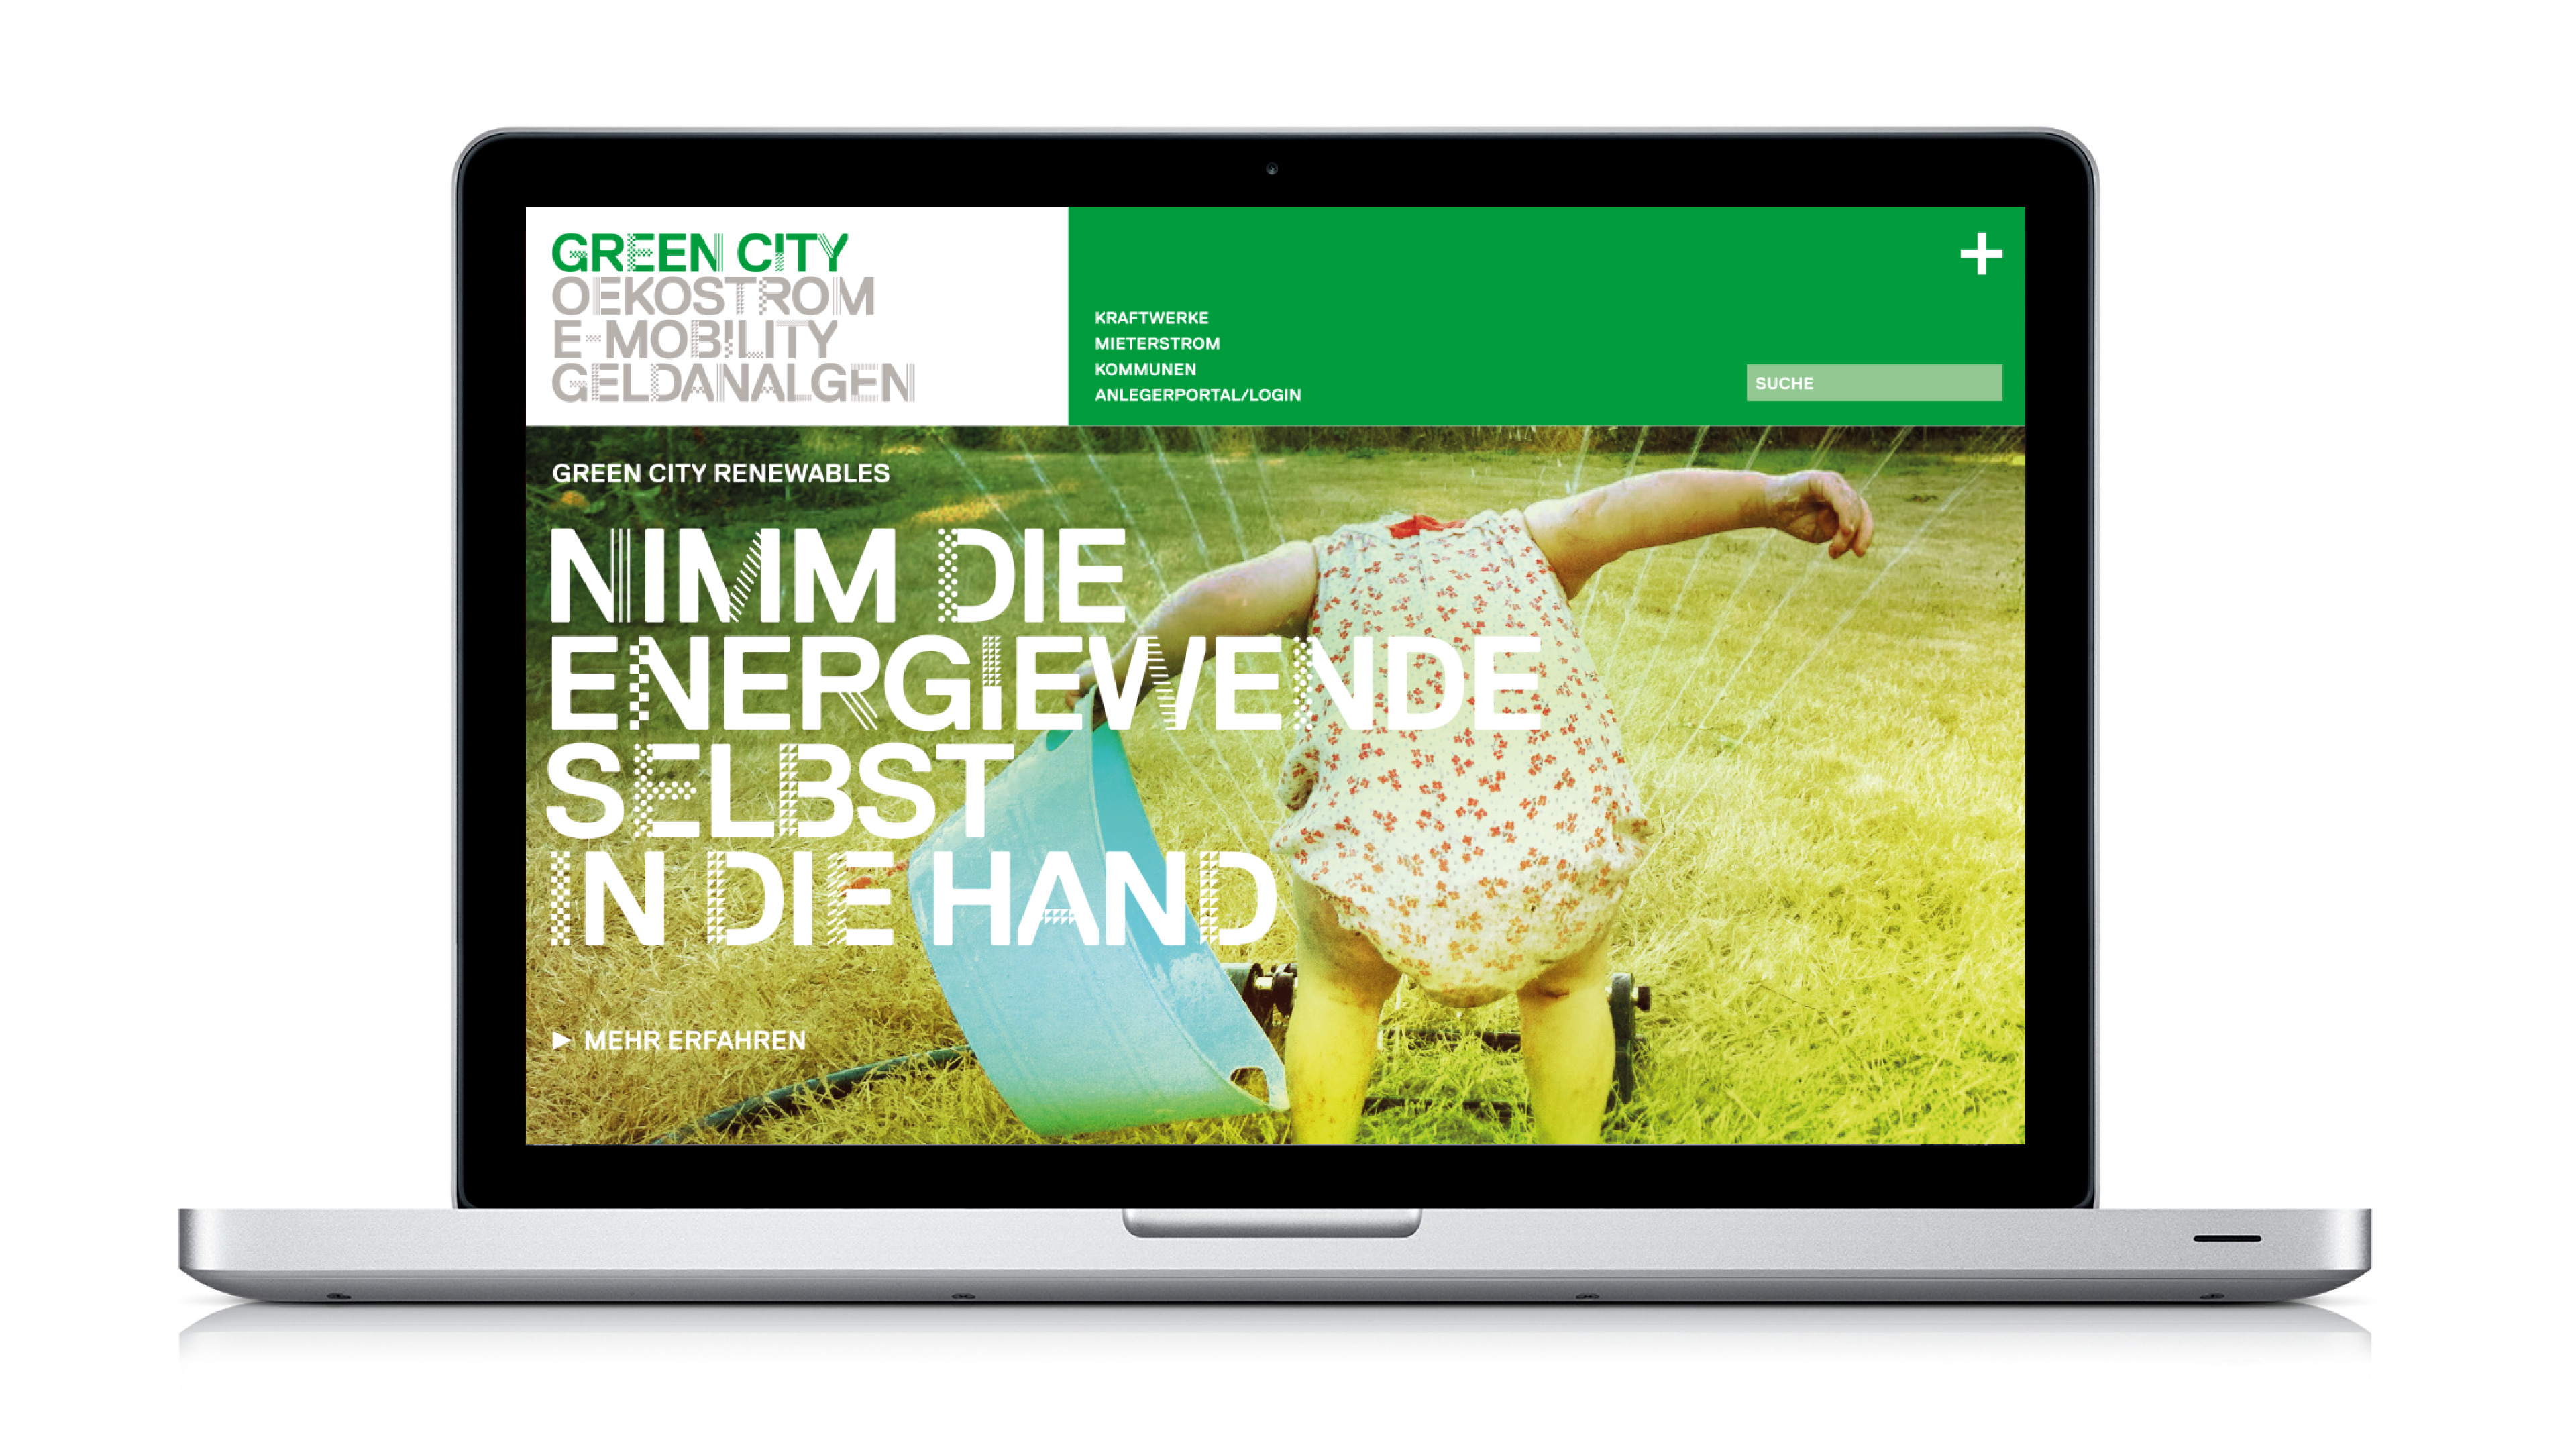 The picture shows the new website of green city.